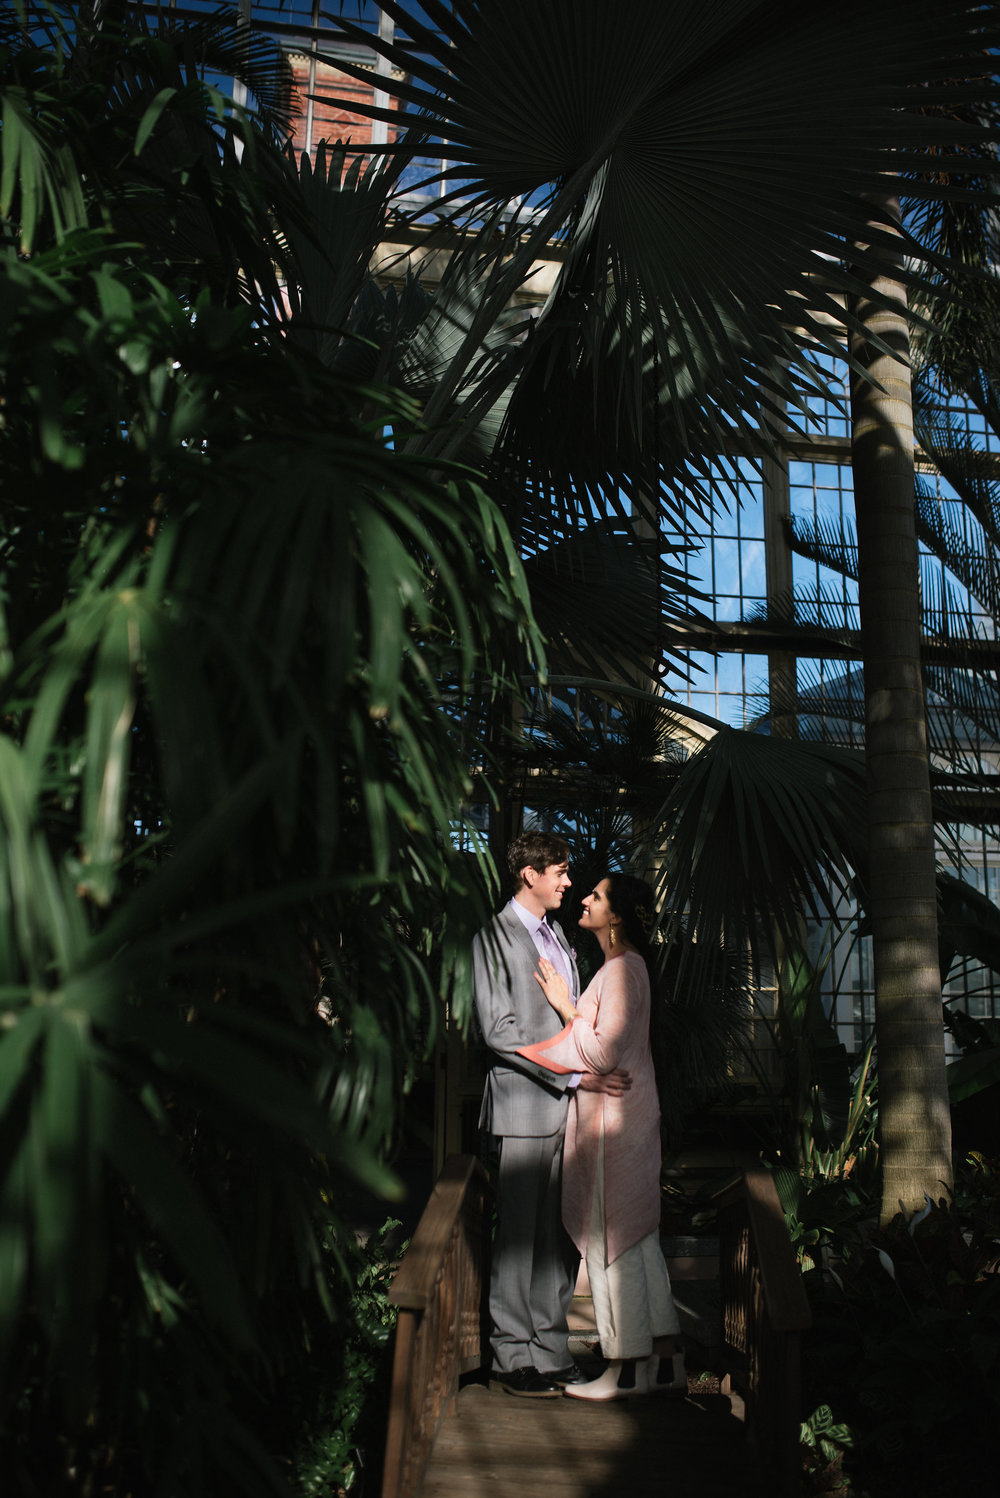 Baltimore, Rawlings Conservatory, Greenhouse, Maryland Wedding Photographer, Indian American, Nature, Romantic, Garden, Secluded Moments, Bride and Groom Laughing, Whimsical